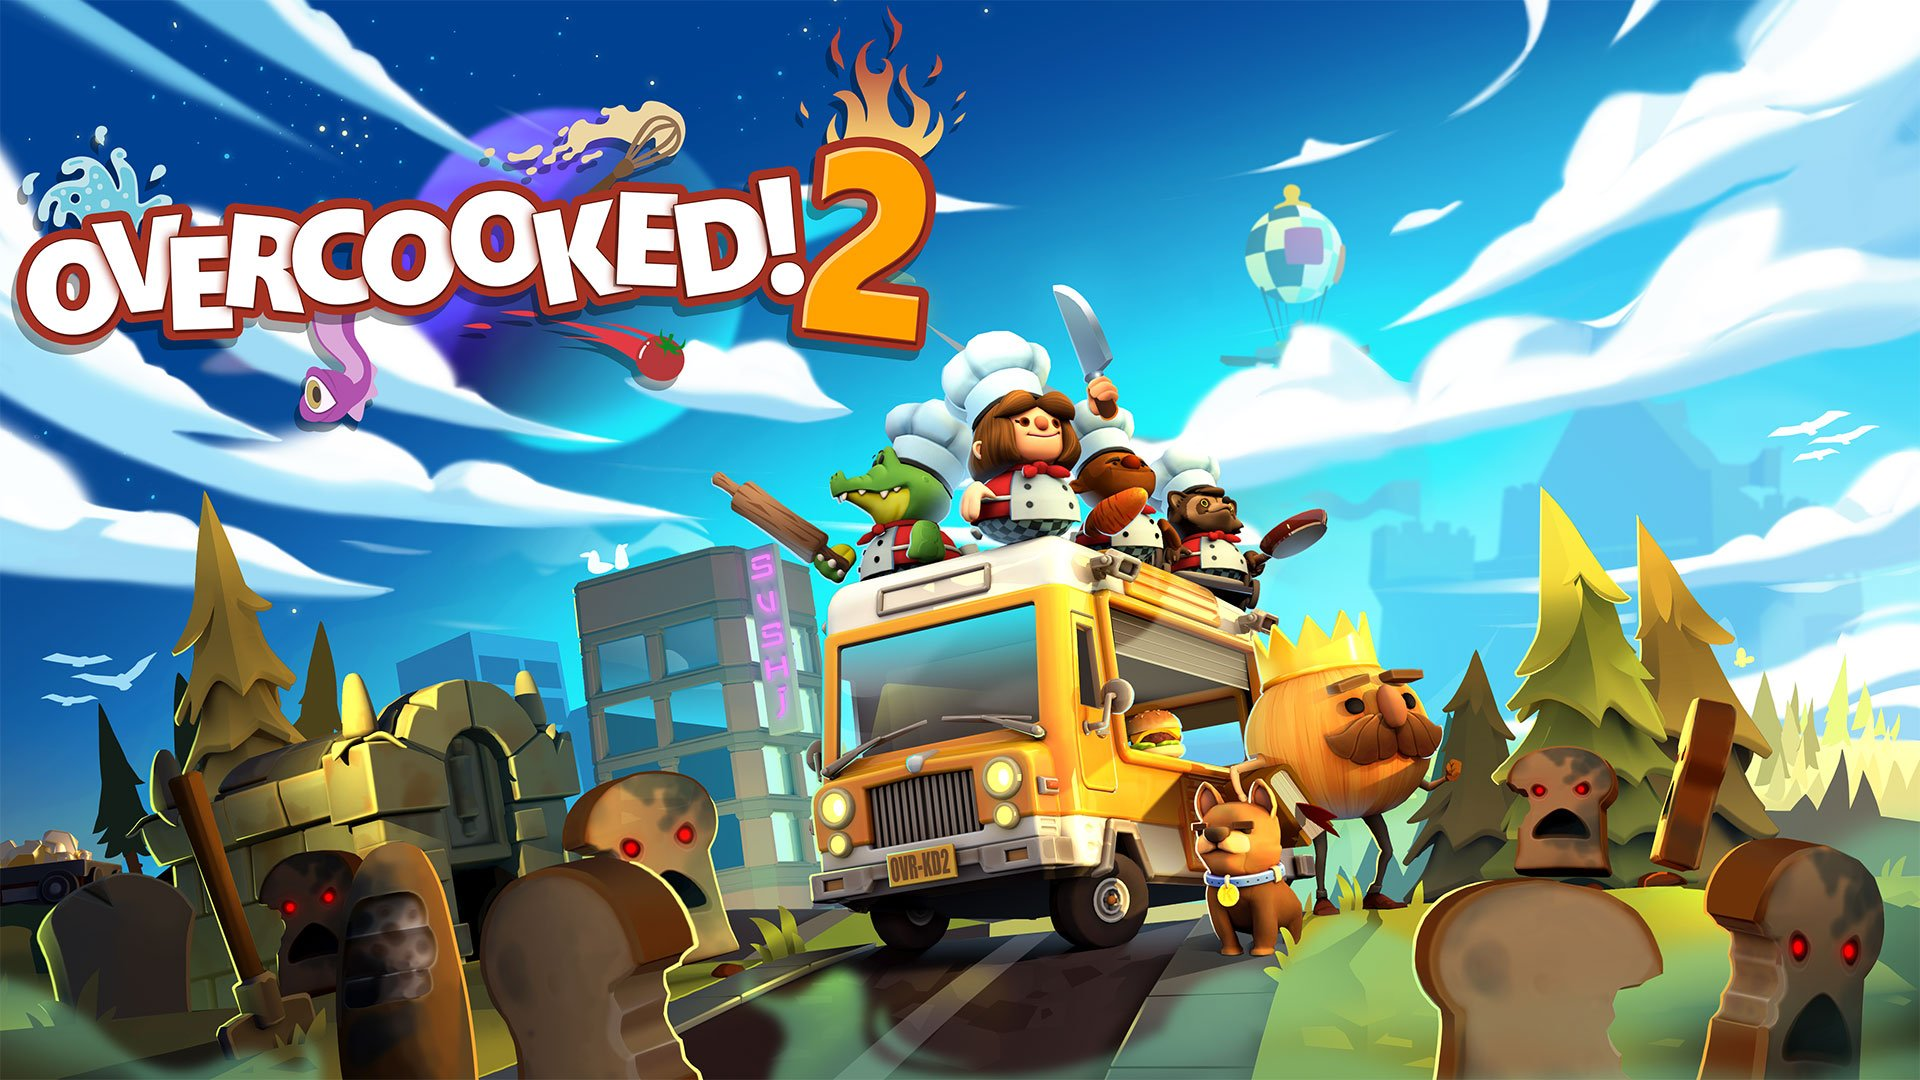 Add games like Overcooked 2 to your inventory during the Winter Sale on the Humble Store.